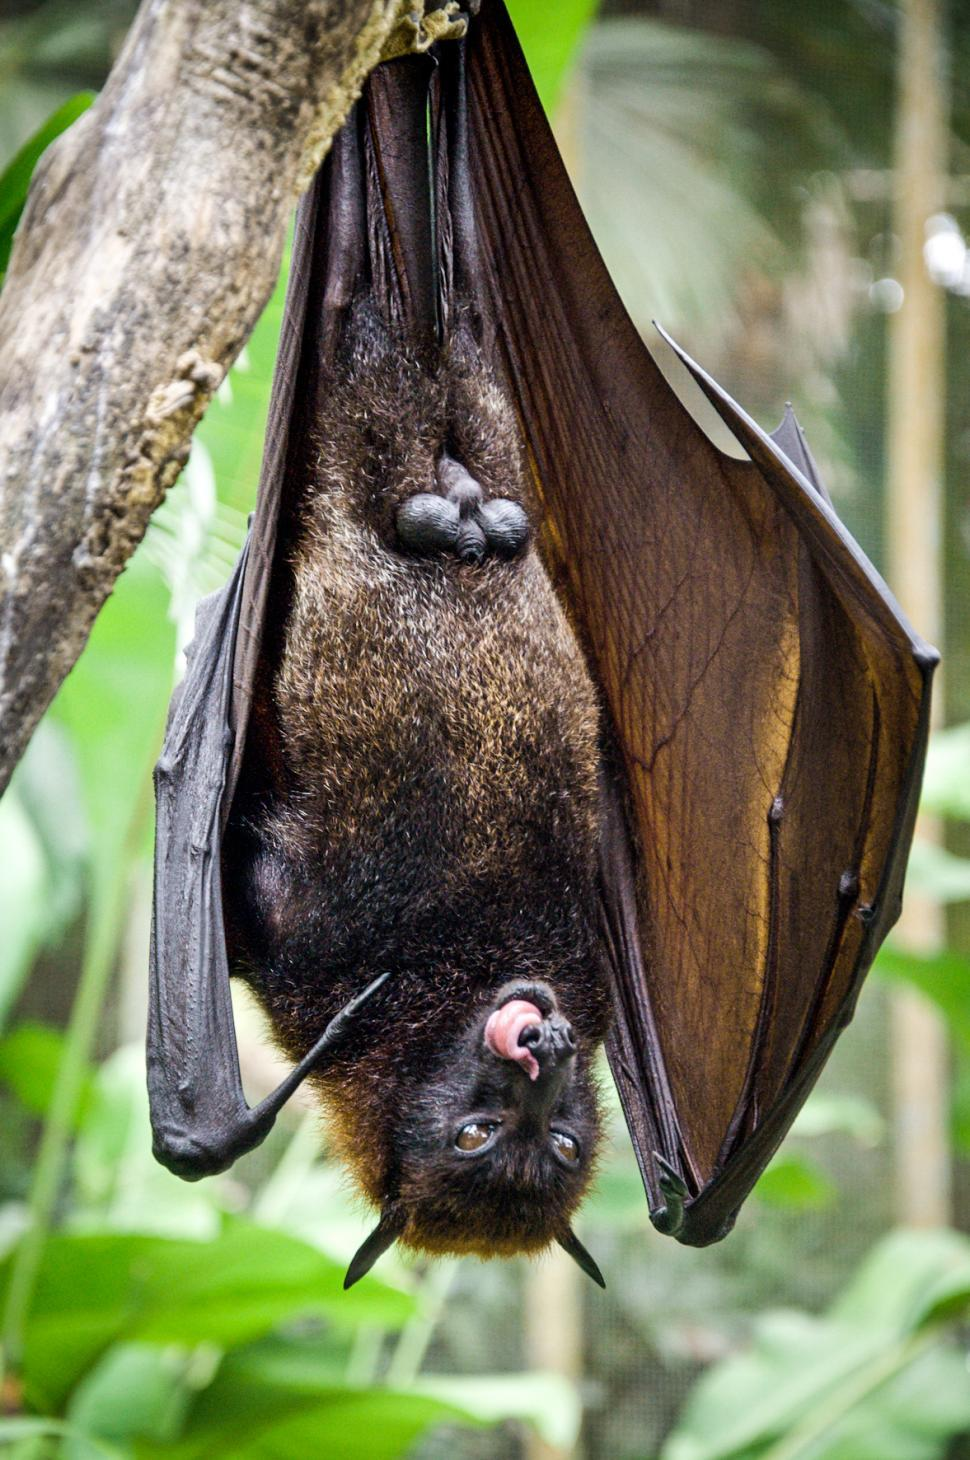 Download Free Stock Photo of Bat hanging on a tree branch